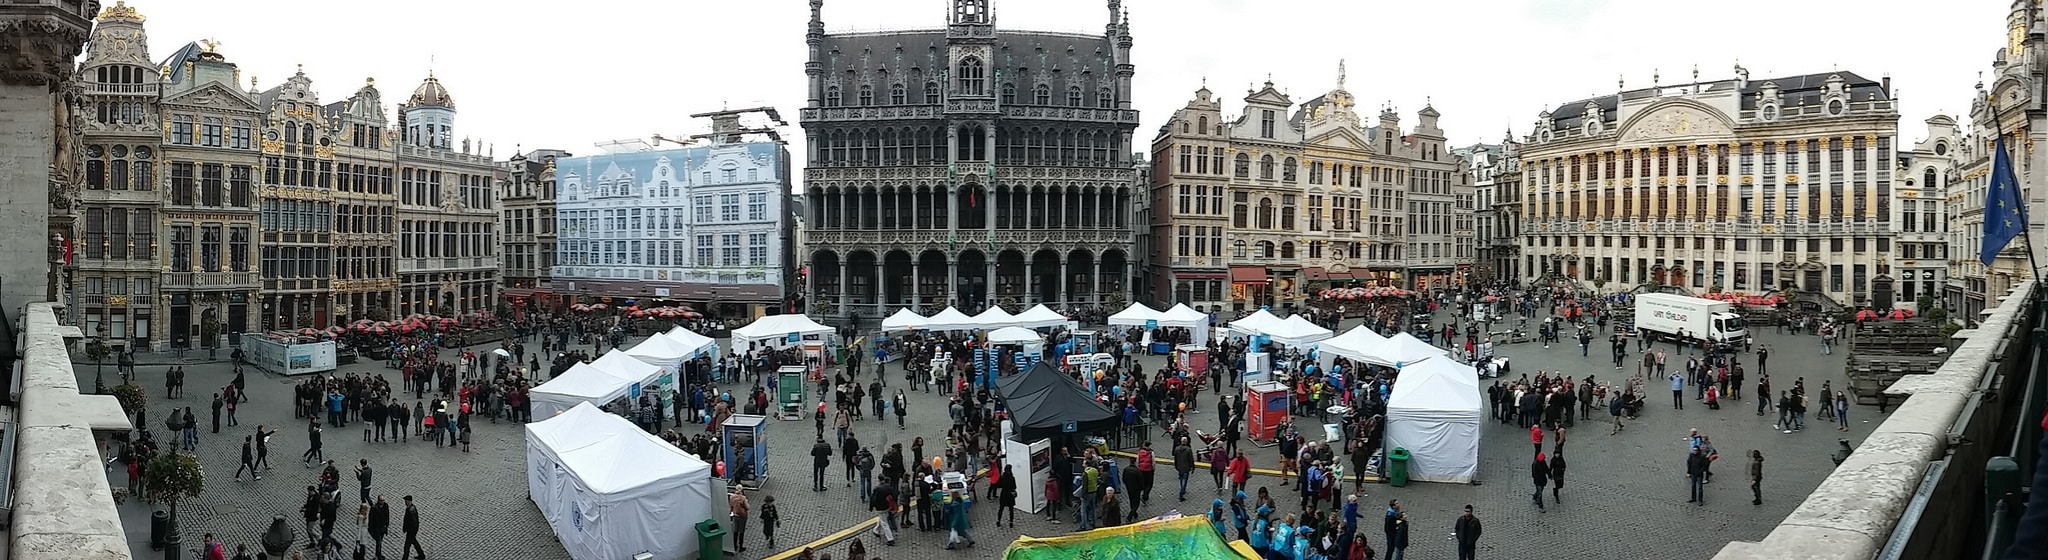 La Grand Place, Brussels UN DAY 2015